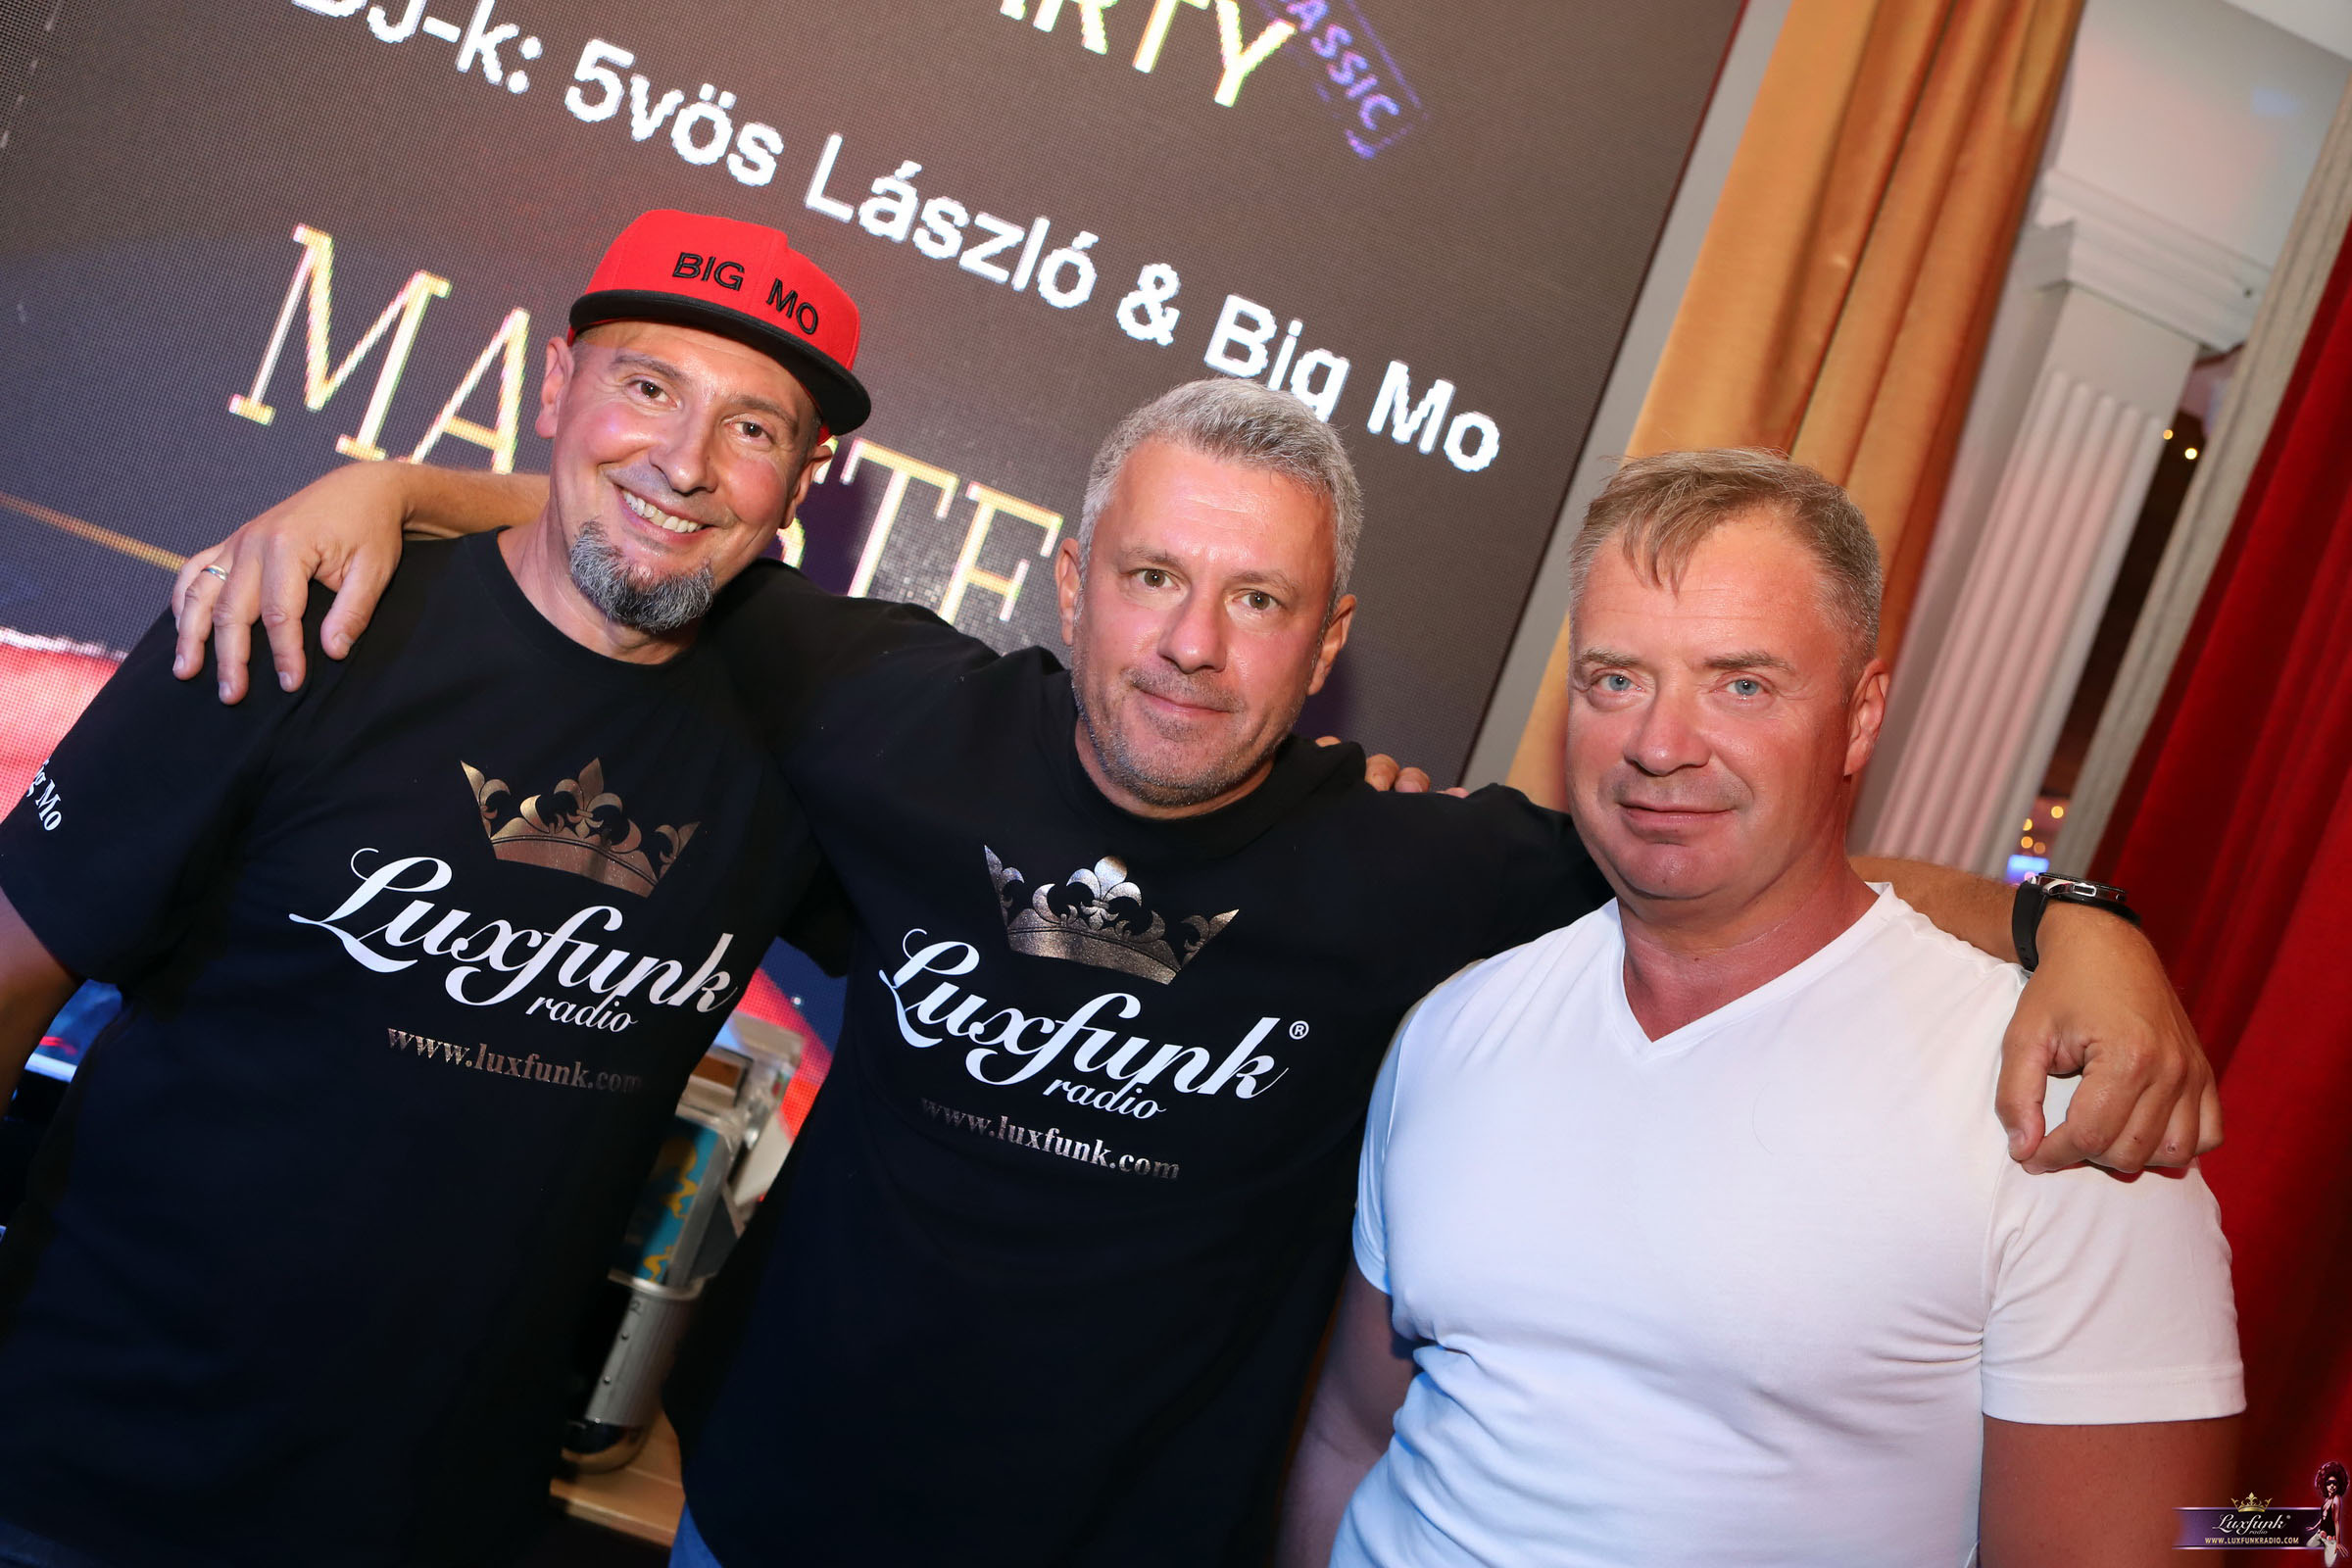 luxfunk-radio-funky-party-200912-symbol-budapest_20